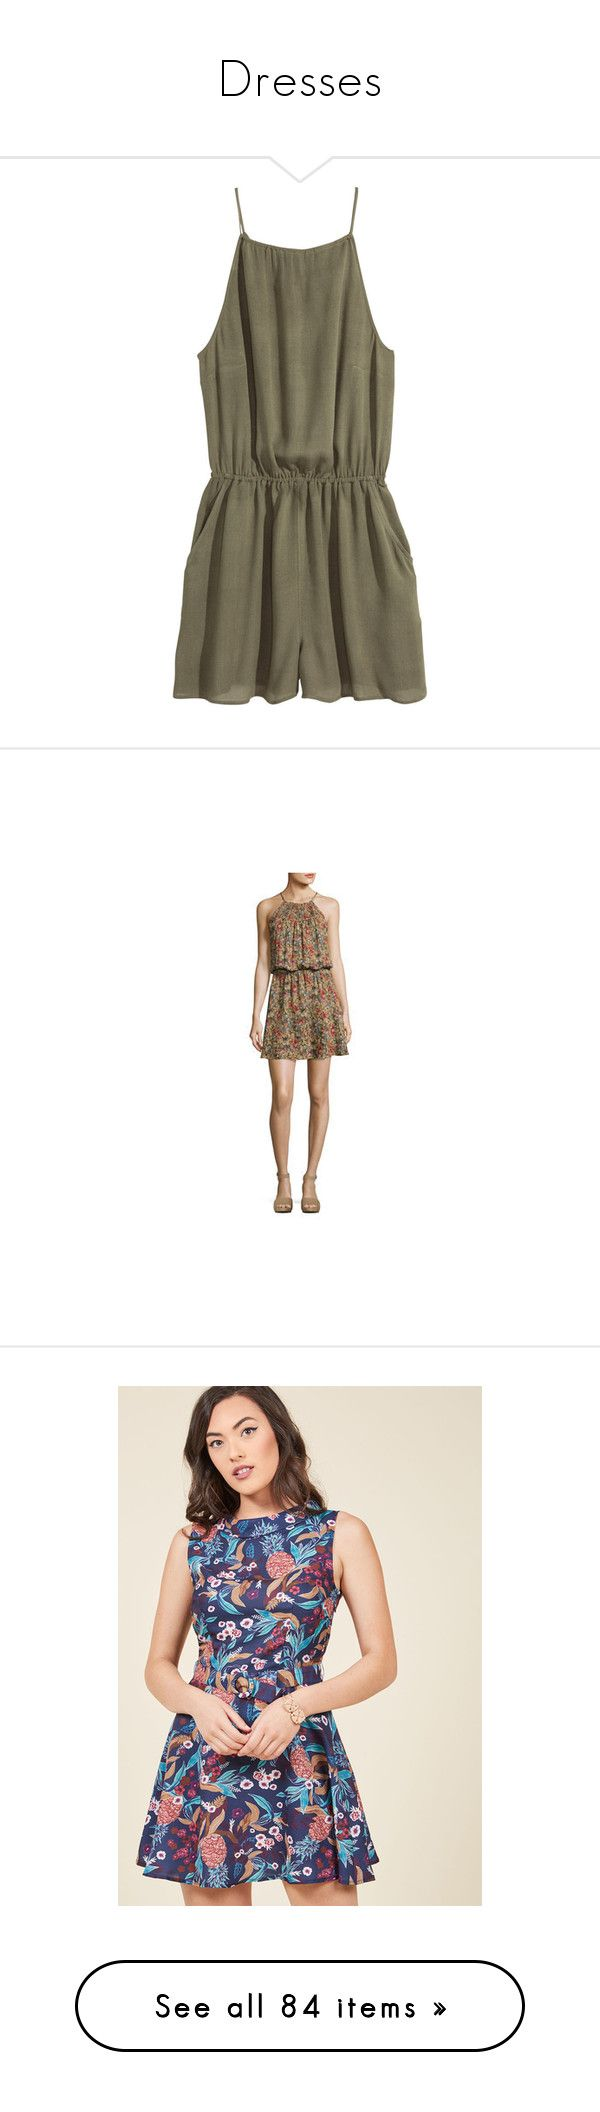 """""""Dresses"""" by elleigh213 ❤ liked on Polyvore featuring jumpsuits, rompers, dresses, playsuits, jumpsuit, khaki green, short romper, h&m romper, playsuit jumpsuit and brown jumpsuit"""